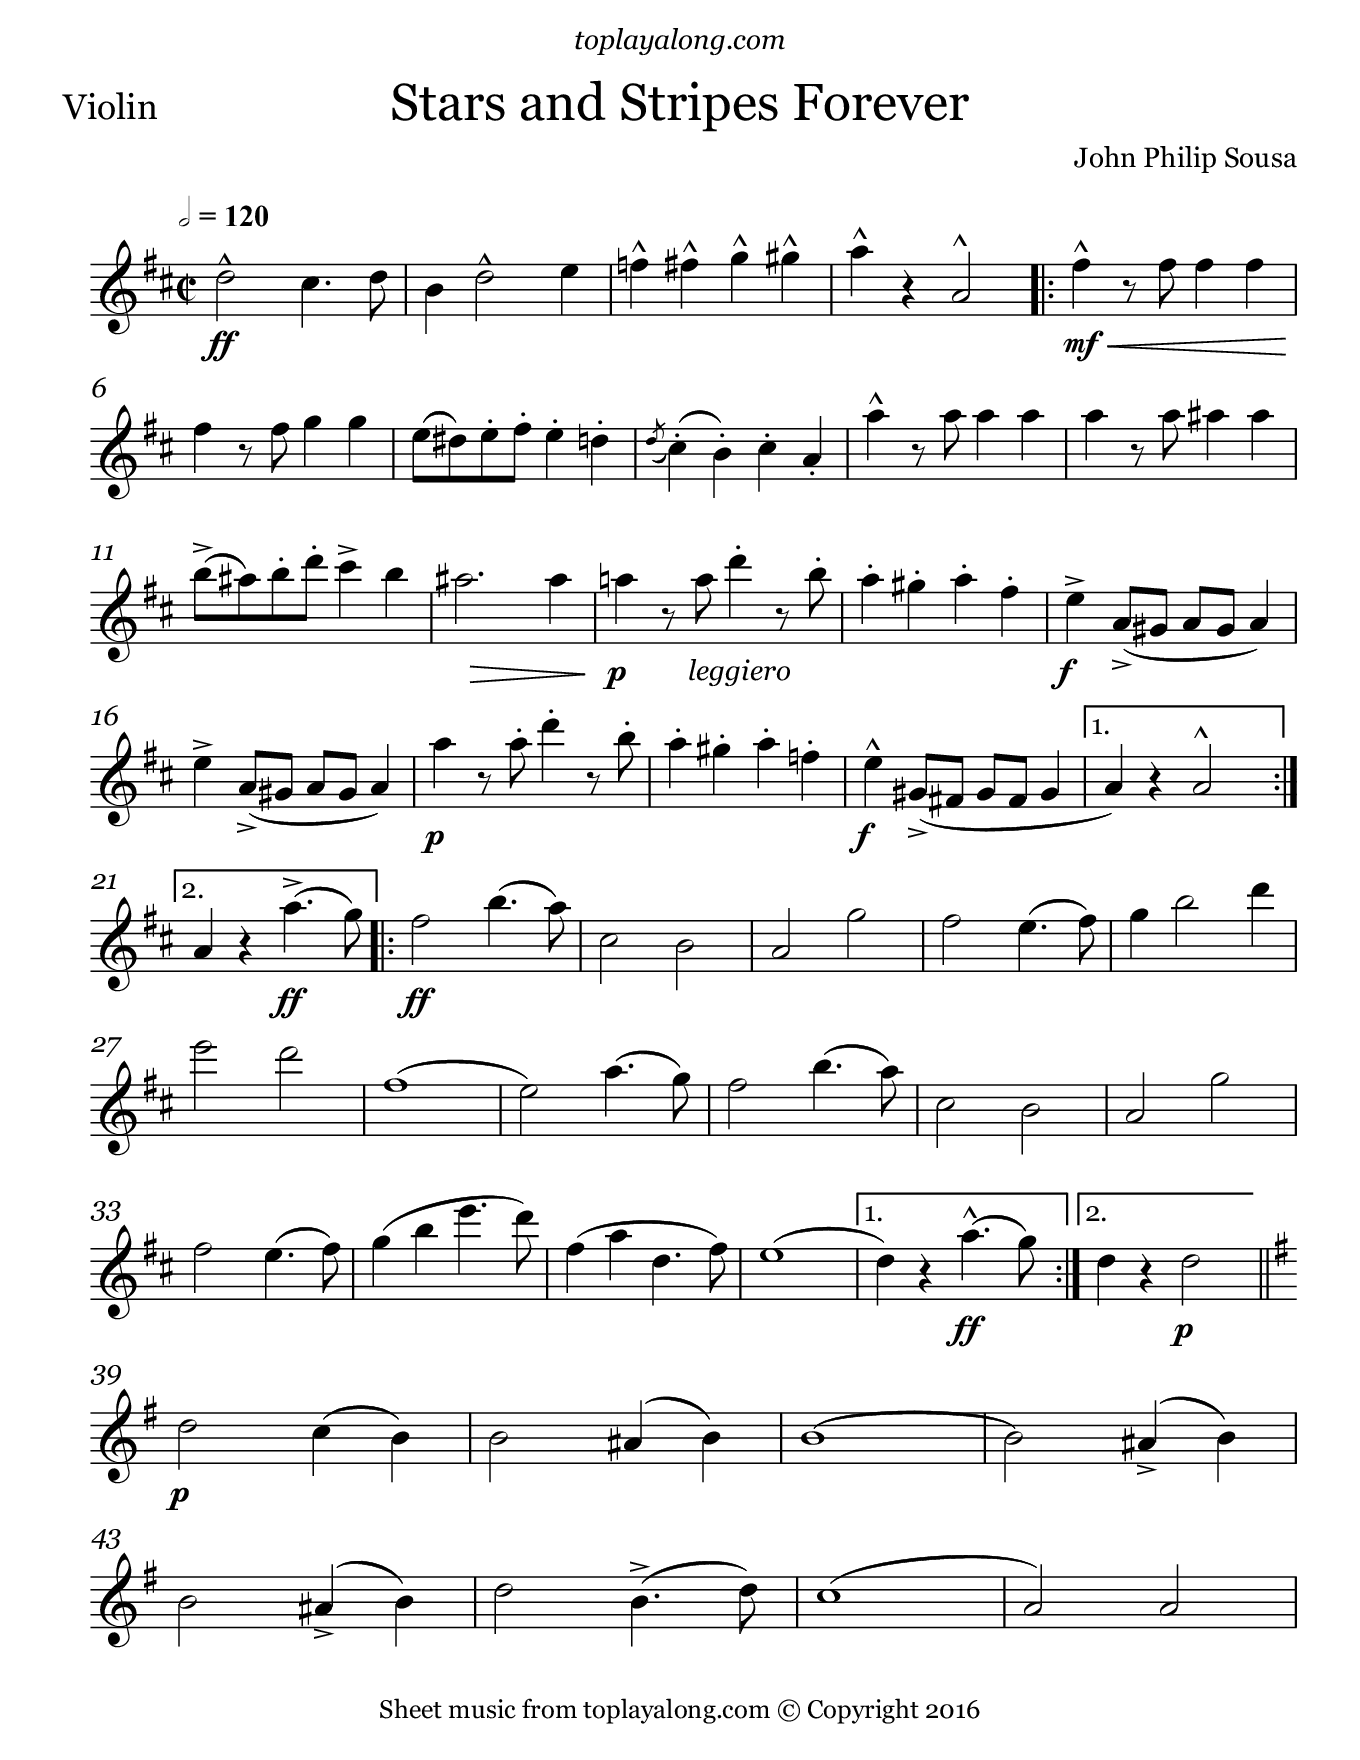 Stars and Stripes Forever by Sousa. Sheet music for Violin, page 1.